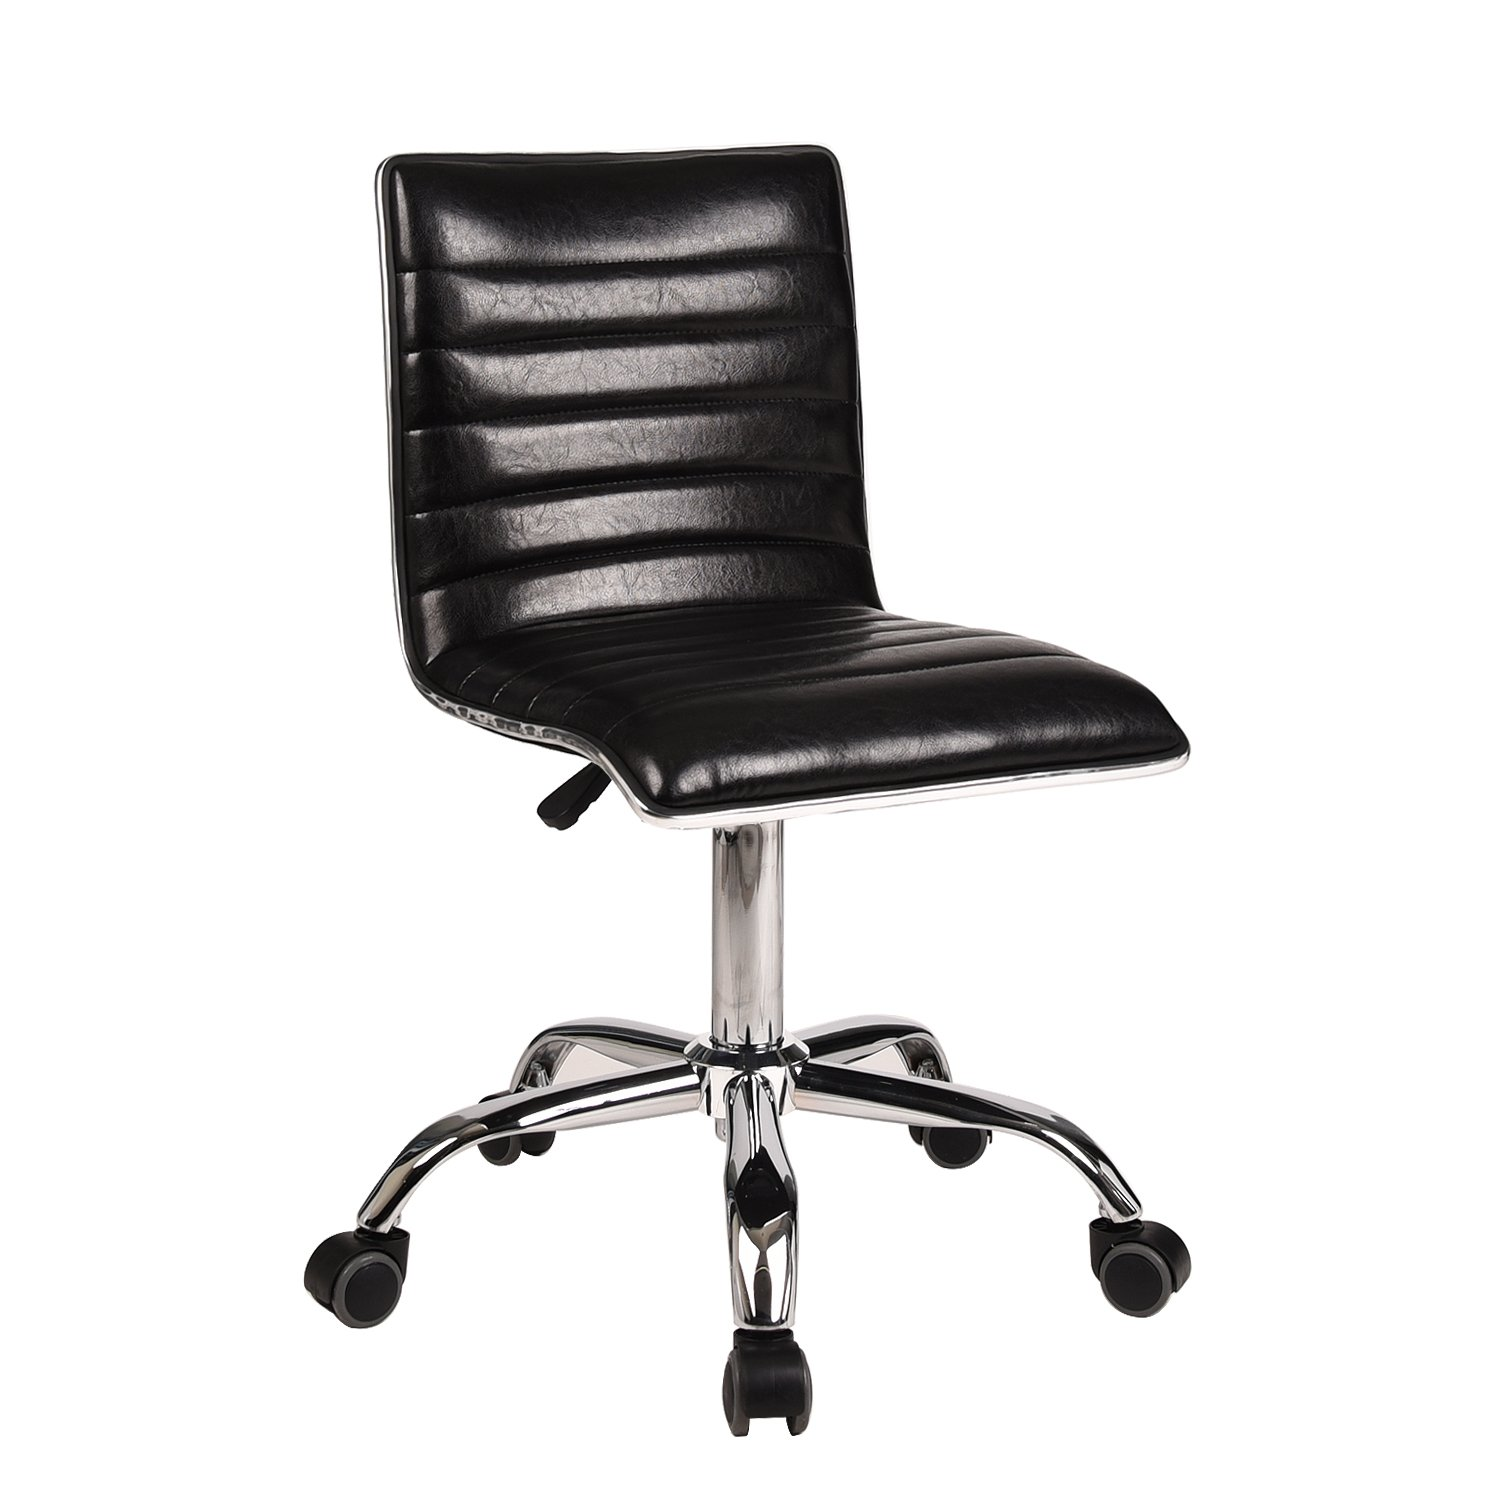 ELECWISH Office Rolling Chair Mid Back Task Chair,Low Back PU Leather Swivel,Computer Desk Chair Armless Ribbed Soft Upholstery Black